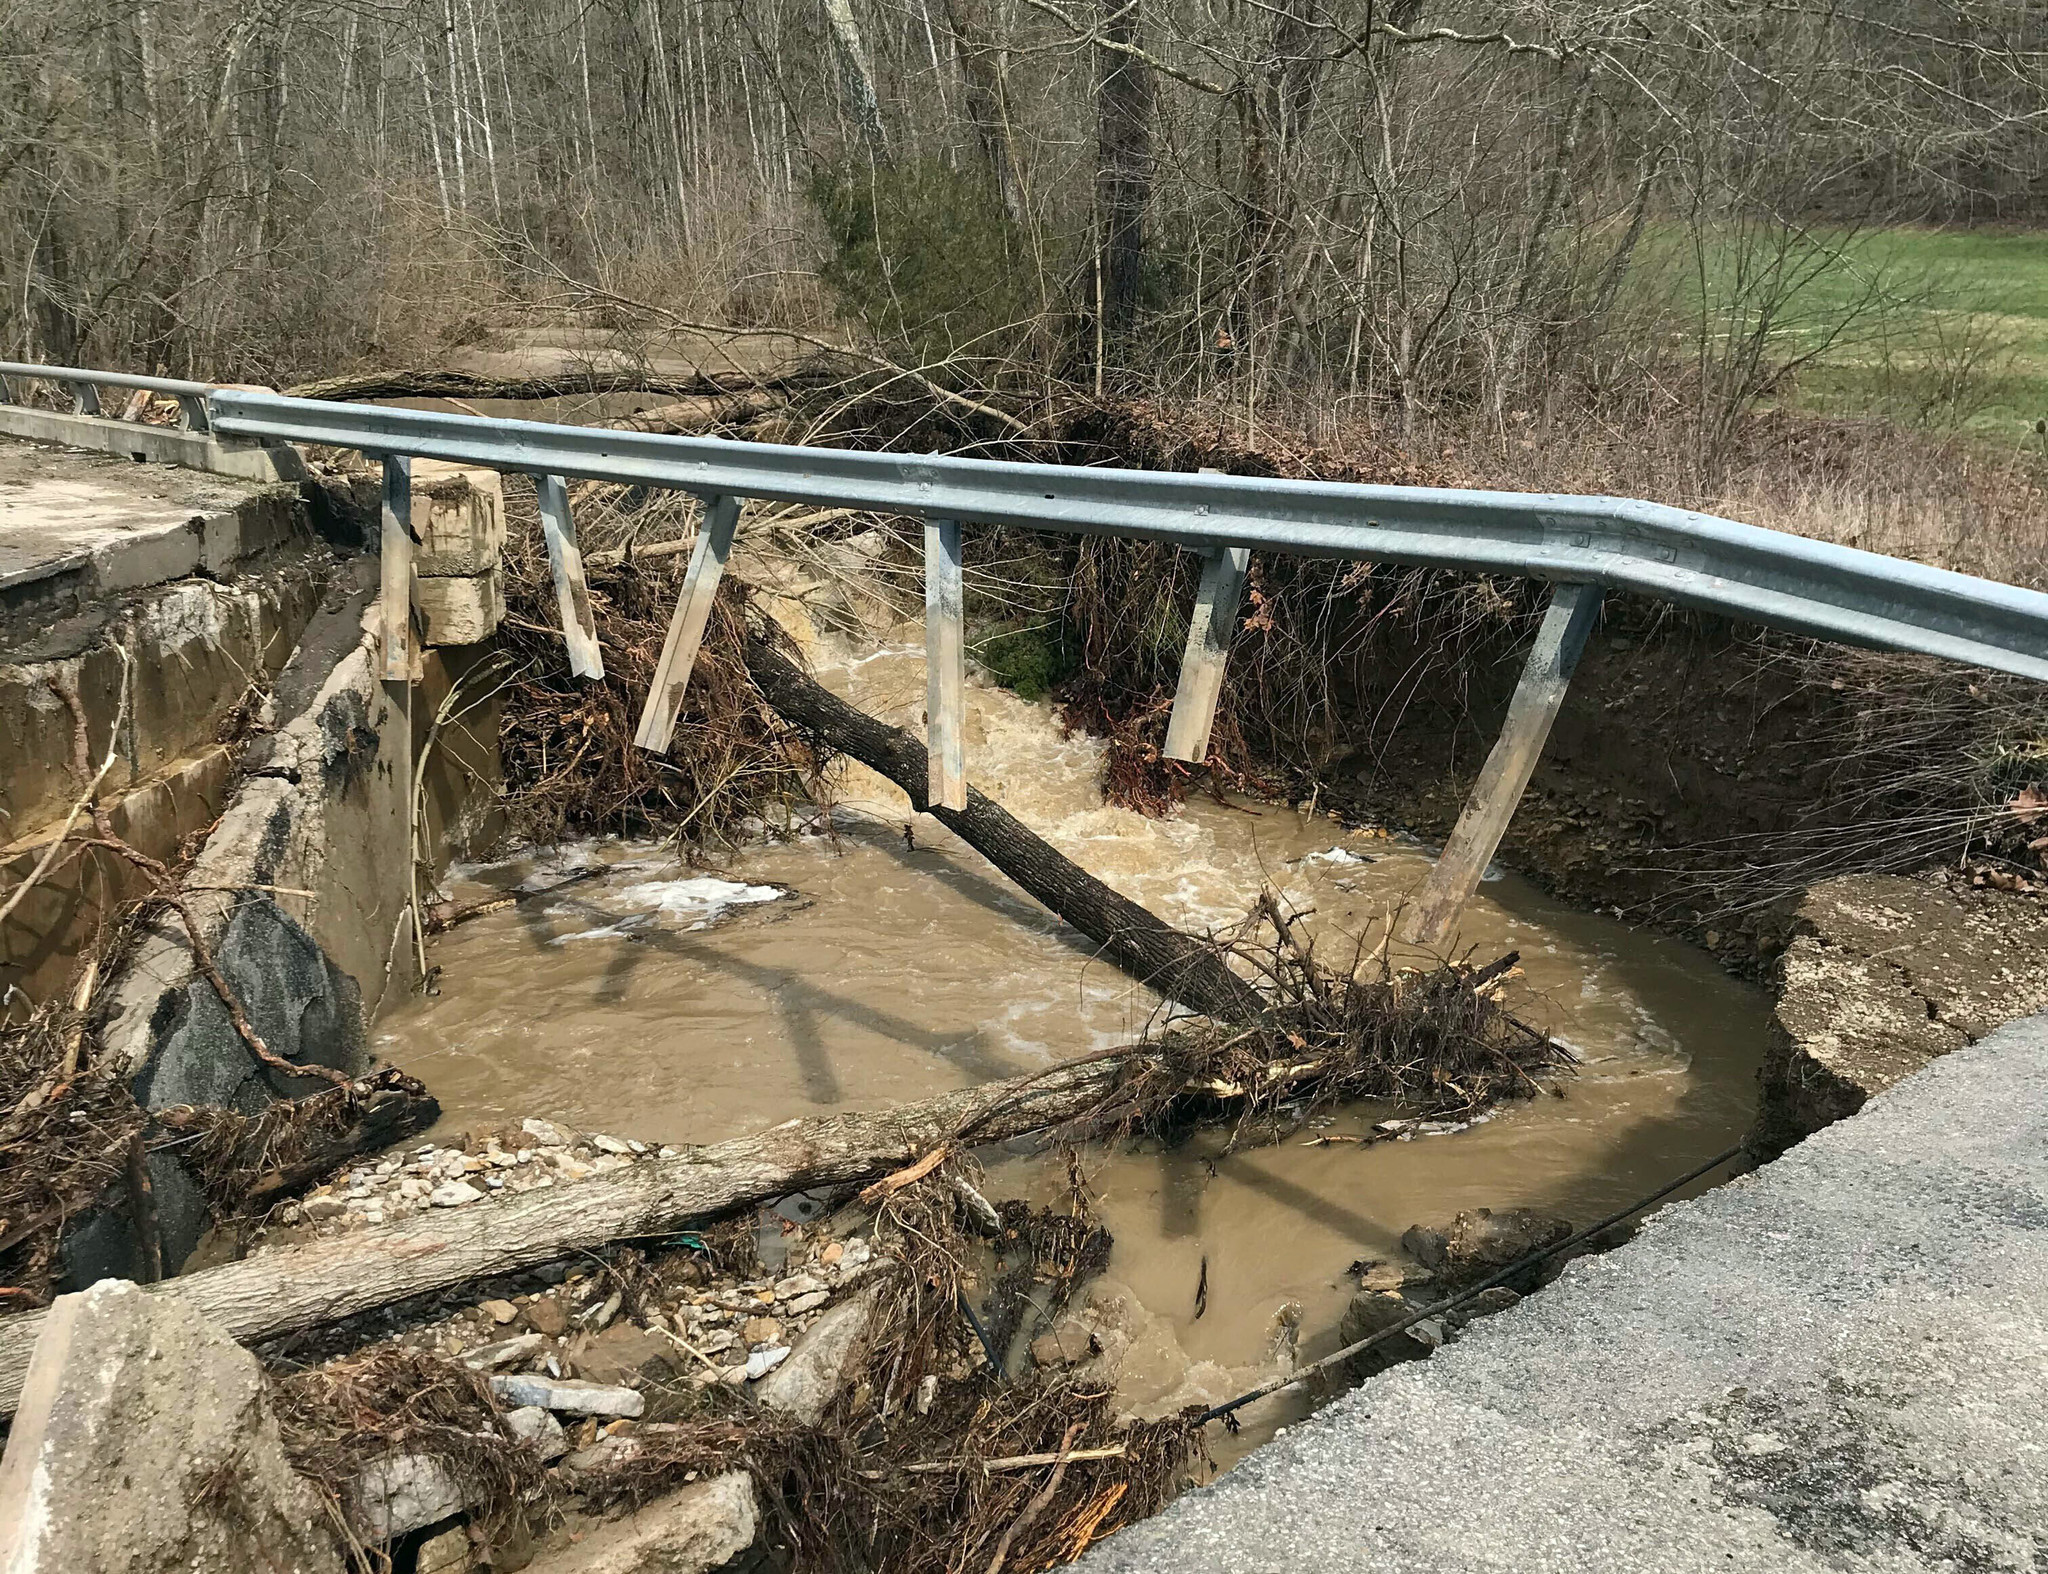 6 dead, including 3 children, after Indiana bridge collapses in floodwaters